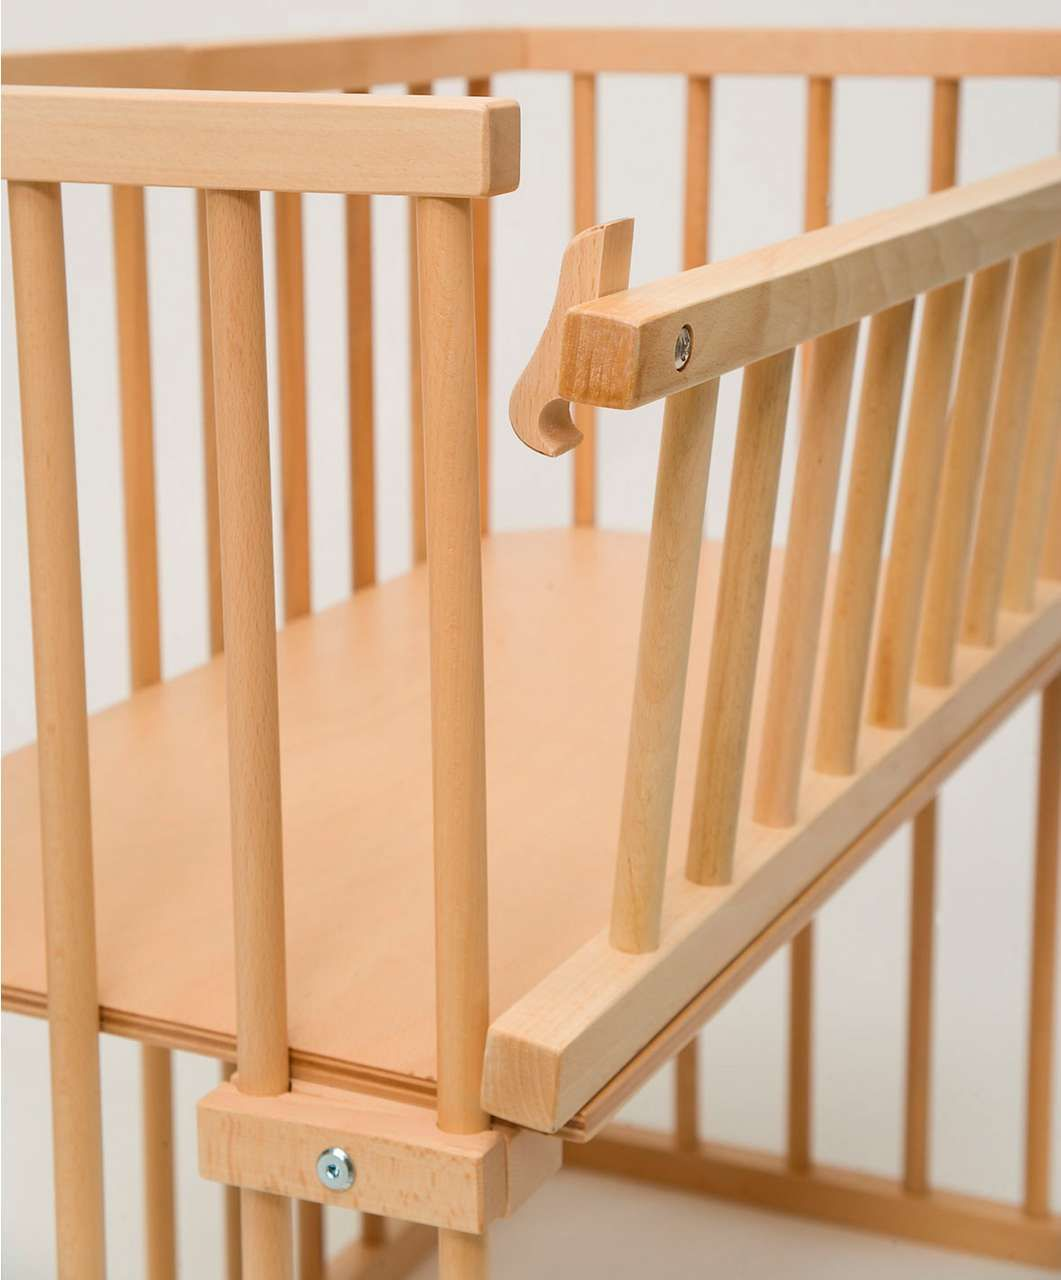 Wooden #bedside cot variable #height #nursery furniture baby crib ...